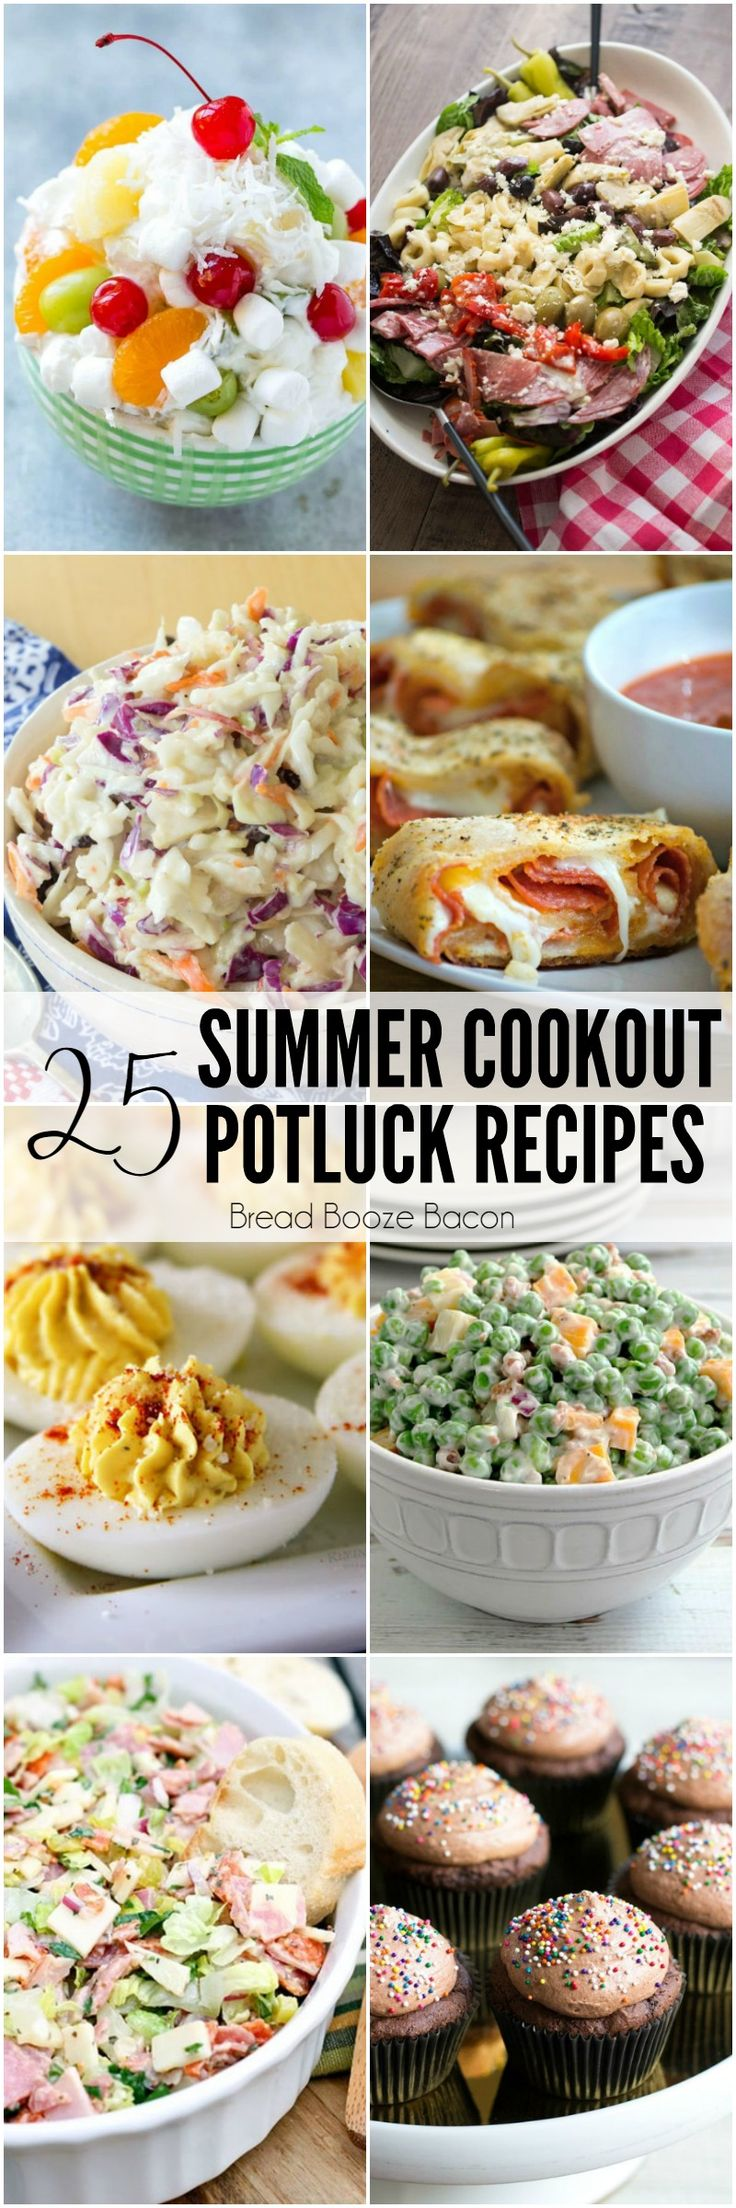 Grab your friends and get ready to eat! These 25 Summer Cookout Potluck Recipes are easy and delicious side dish, appetizer, and dessert options to take to your next potluck. All of these recipes travel well and are sure to make their mark on the buffet table.